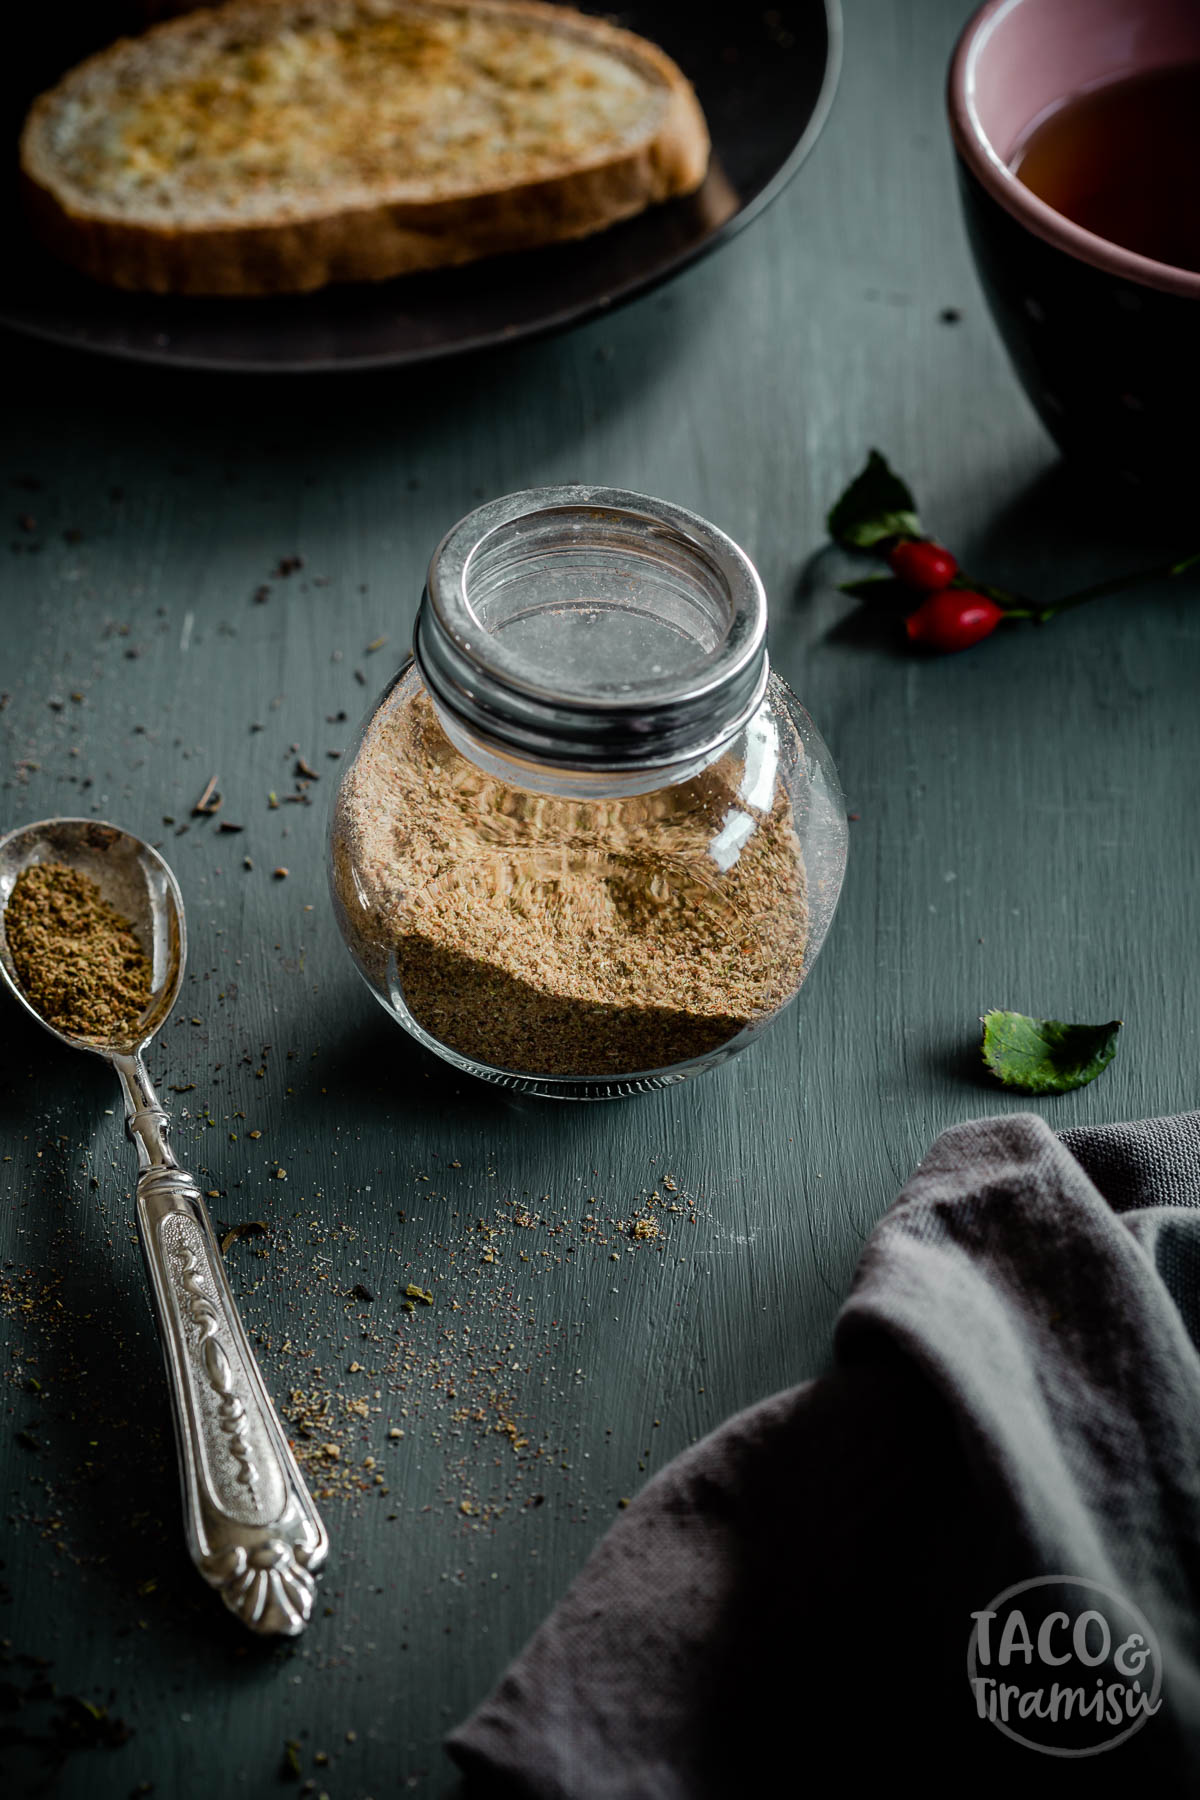 sharena sol in a jar on a wooden background